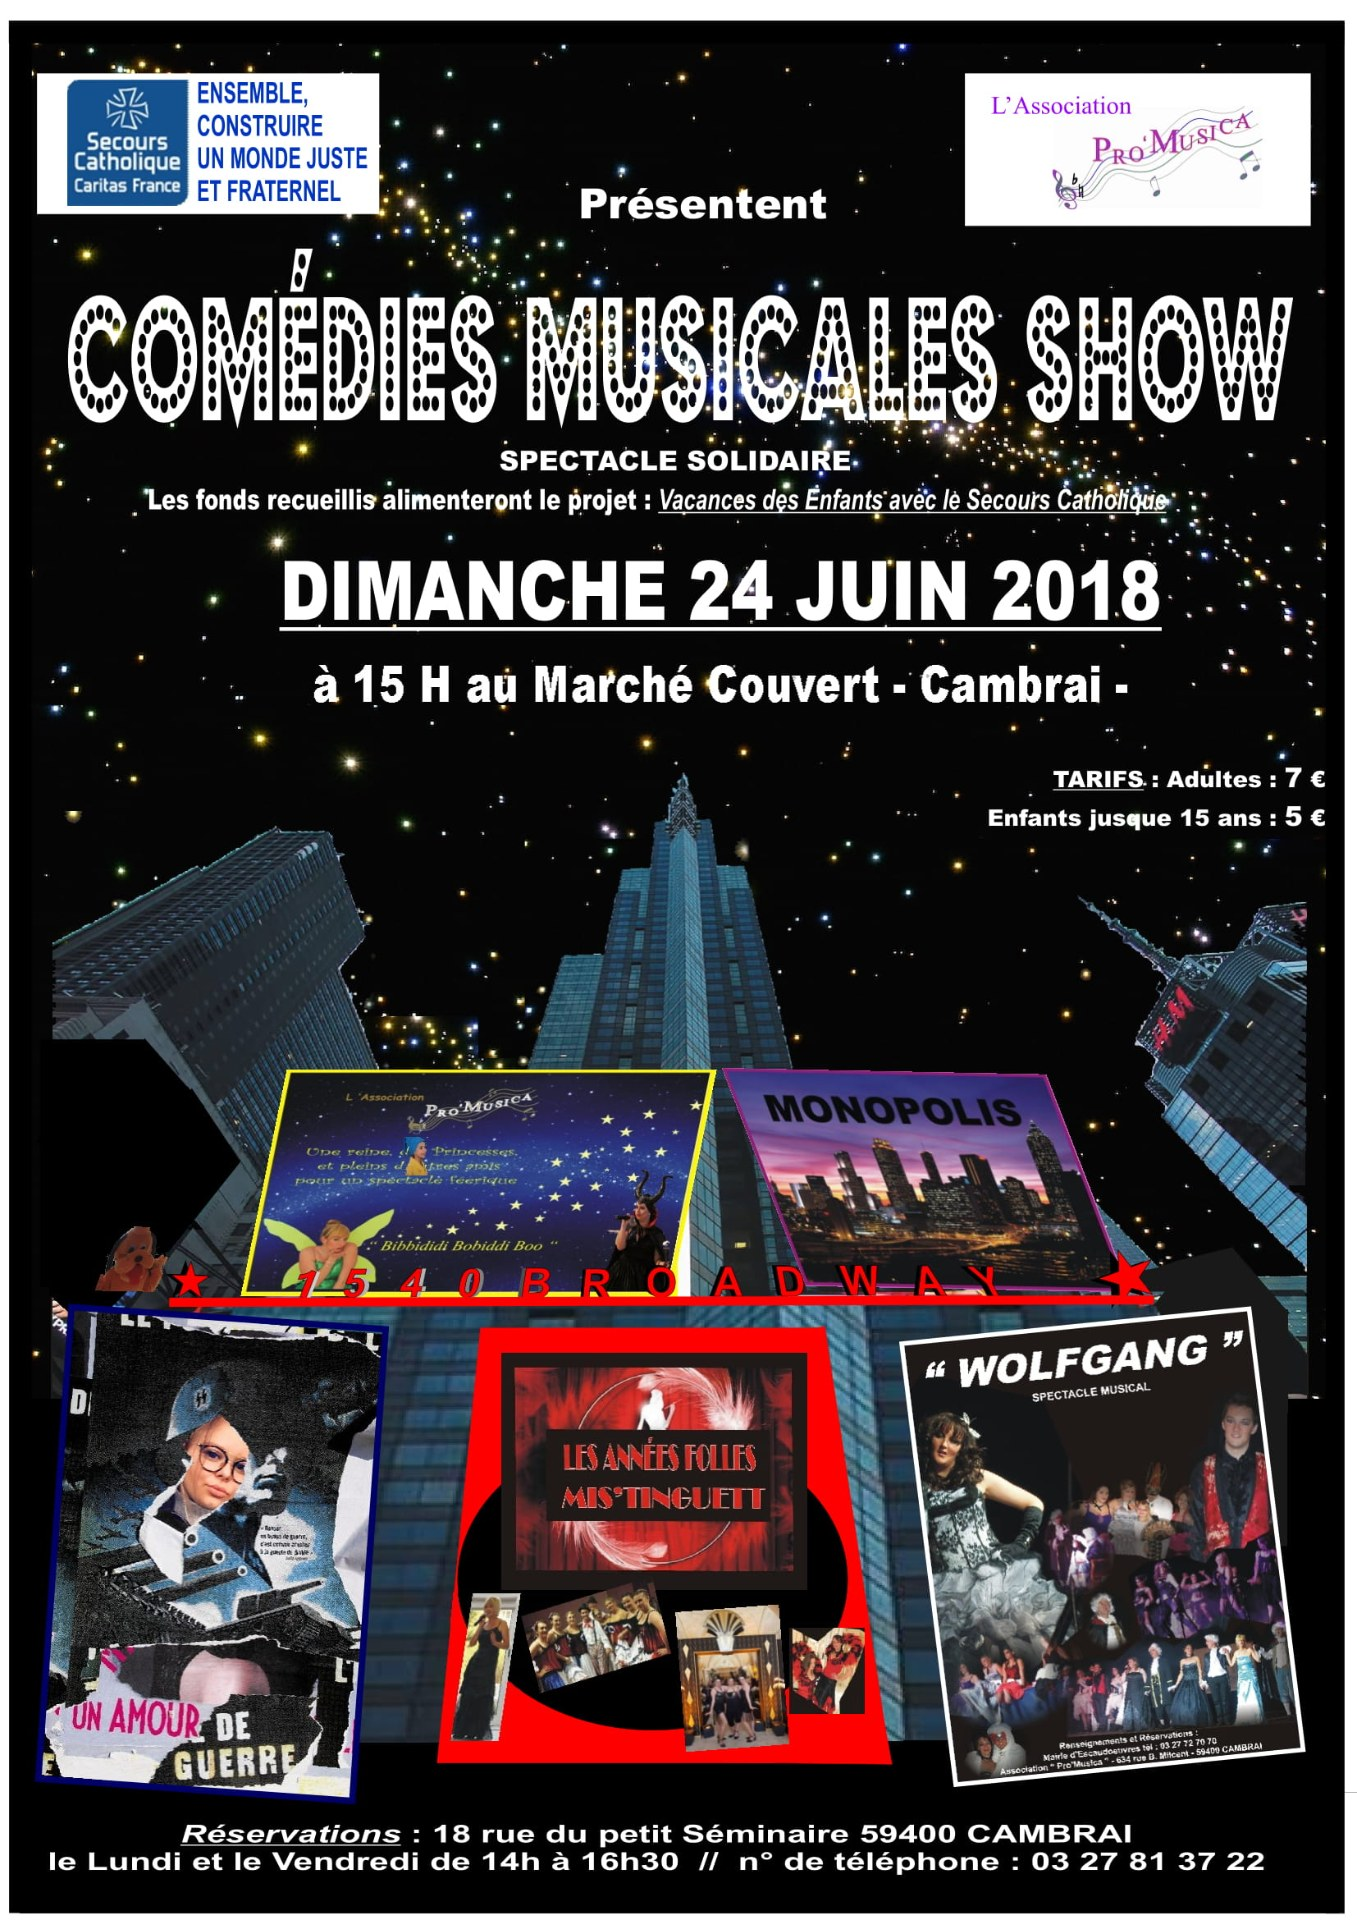 Affiche comedies musicales show 24 juin 2018